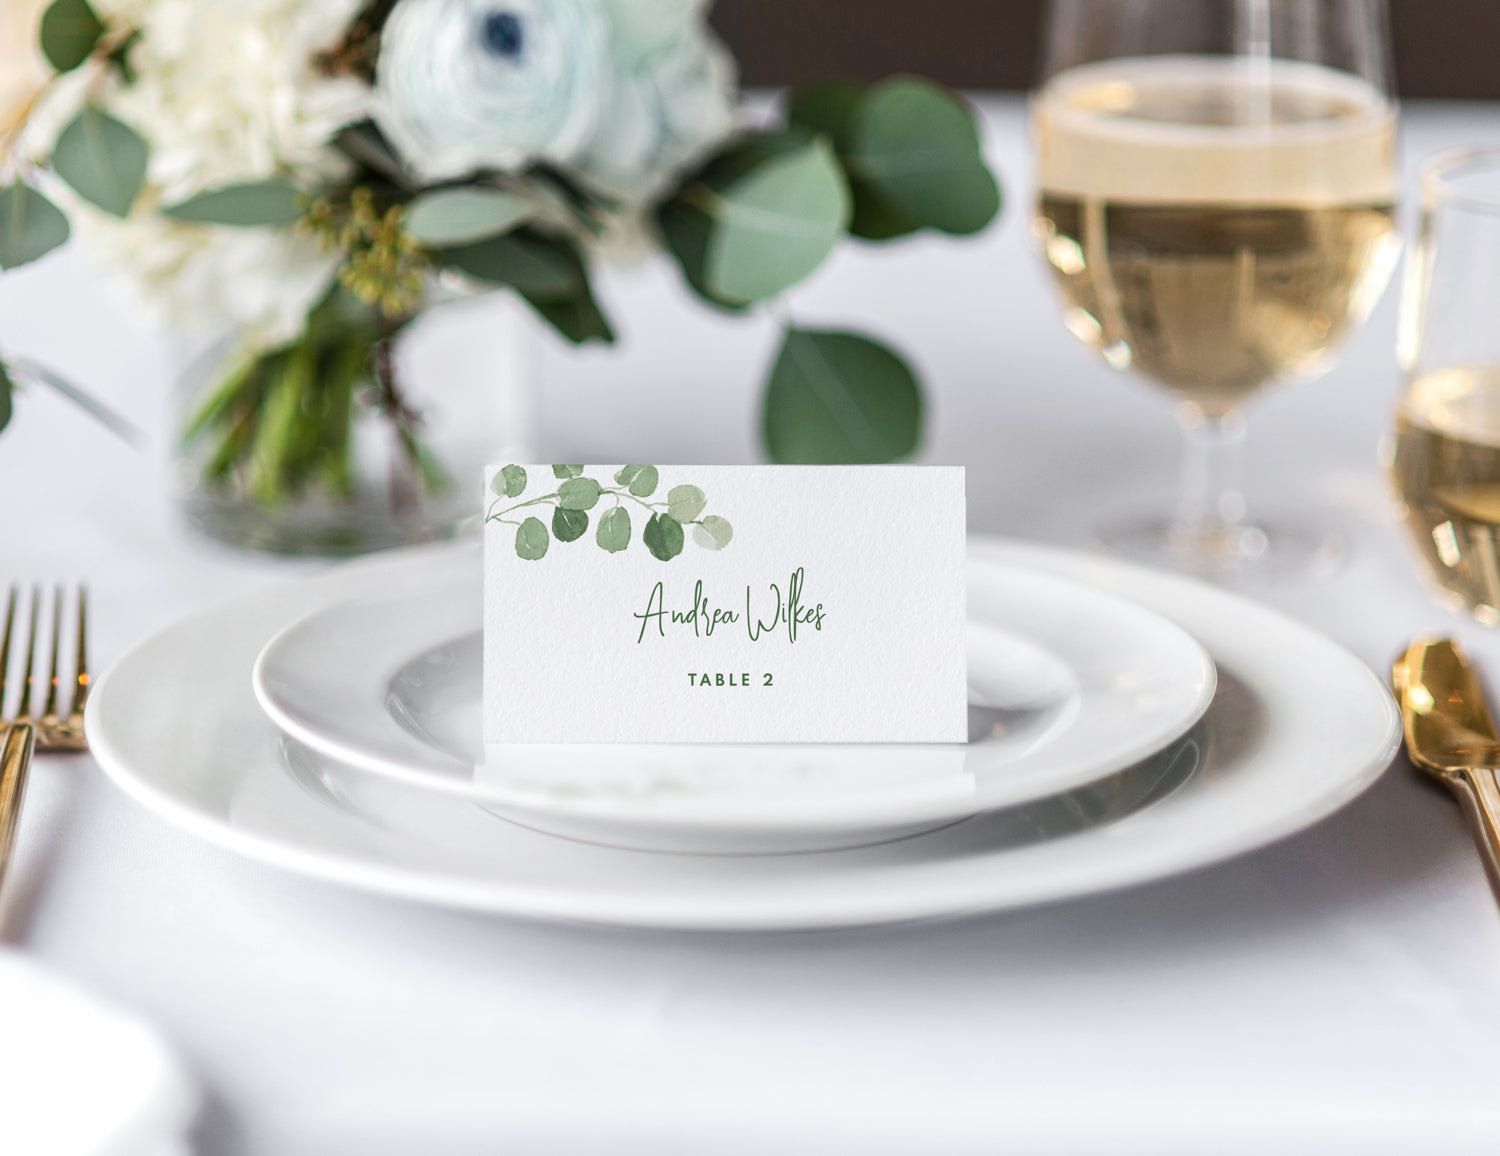 Wedding Place Card Template from cdn.shopify.com